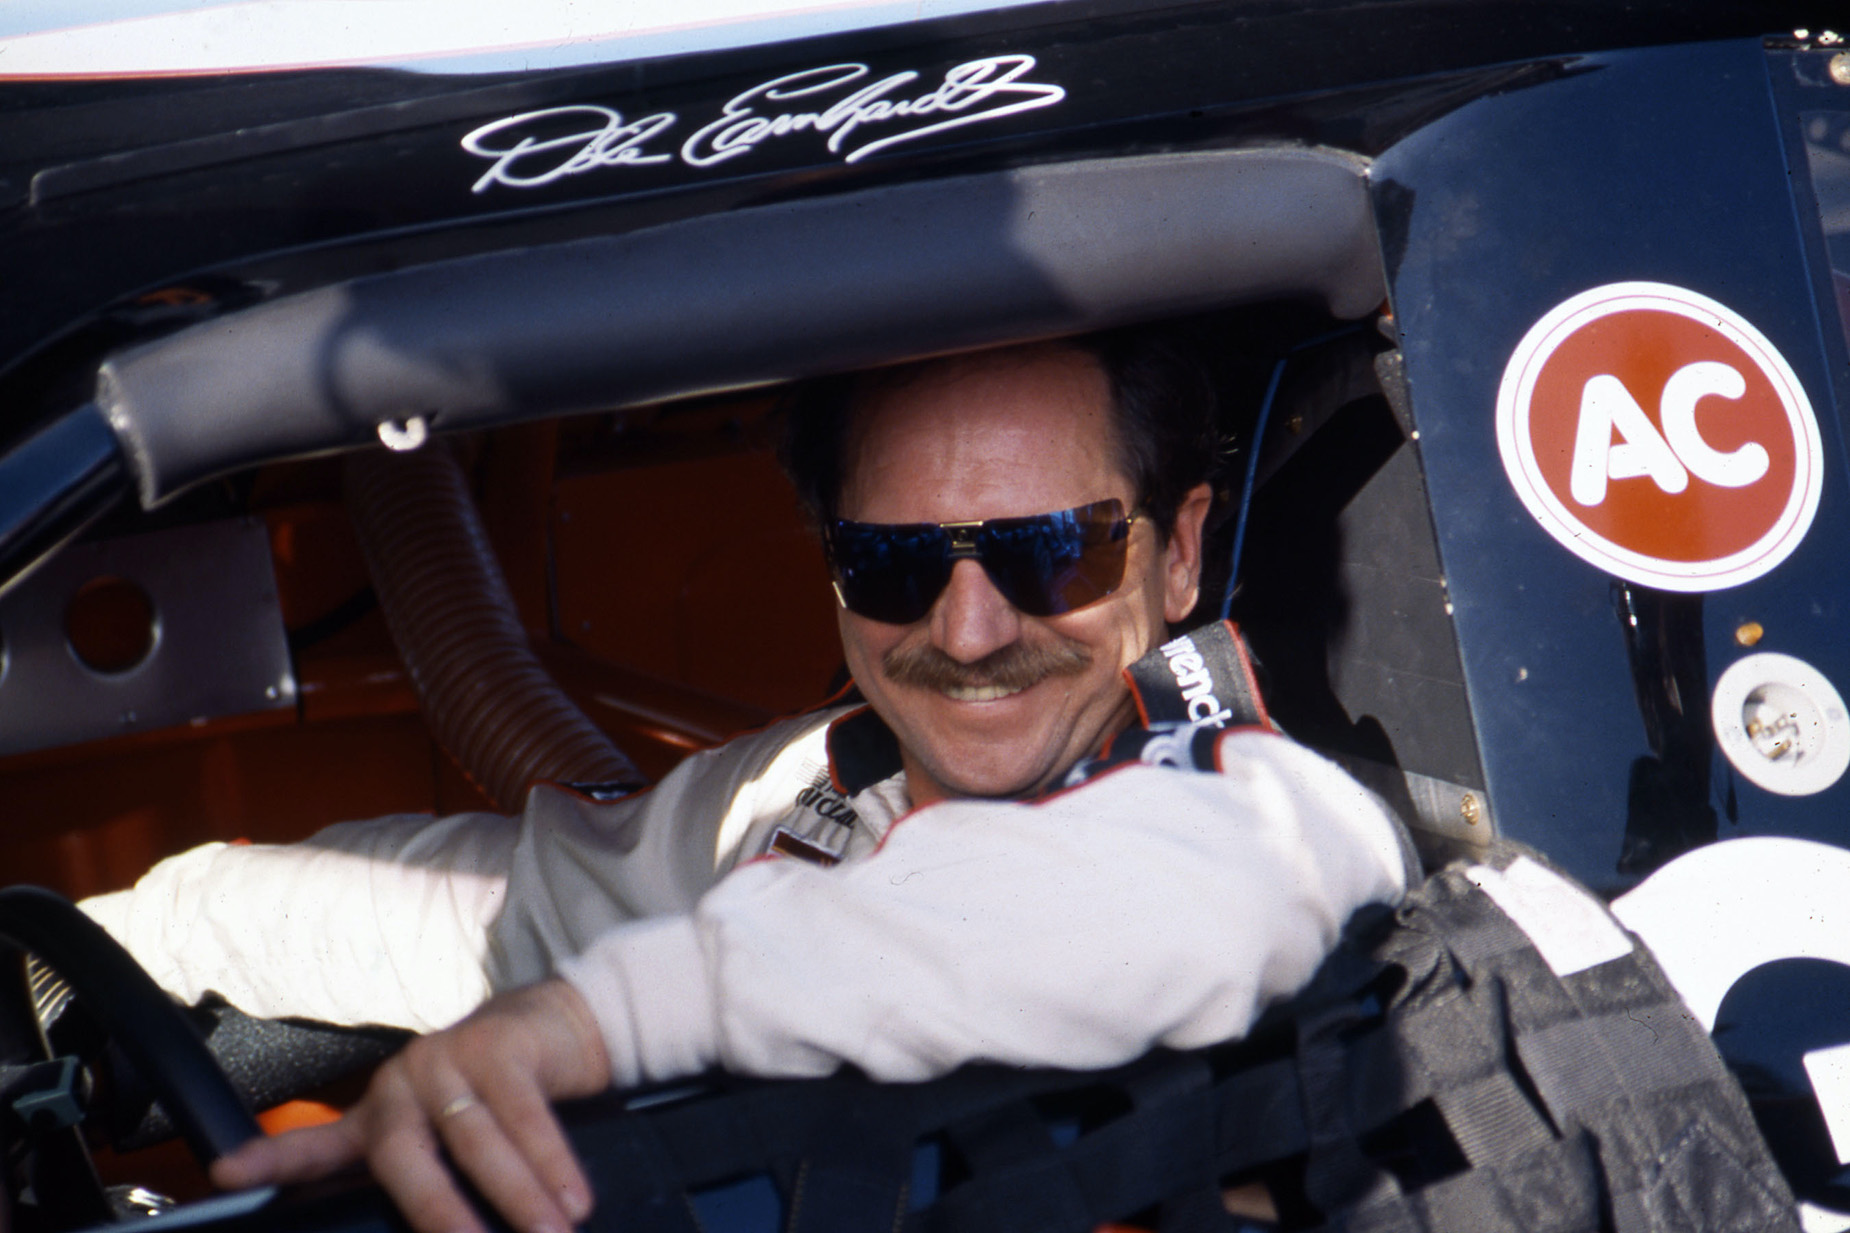 NASCAR legend Dale Earnhardt, showing his signature mustache, sits in the driver's seat.